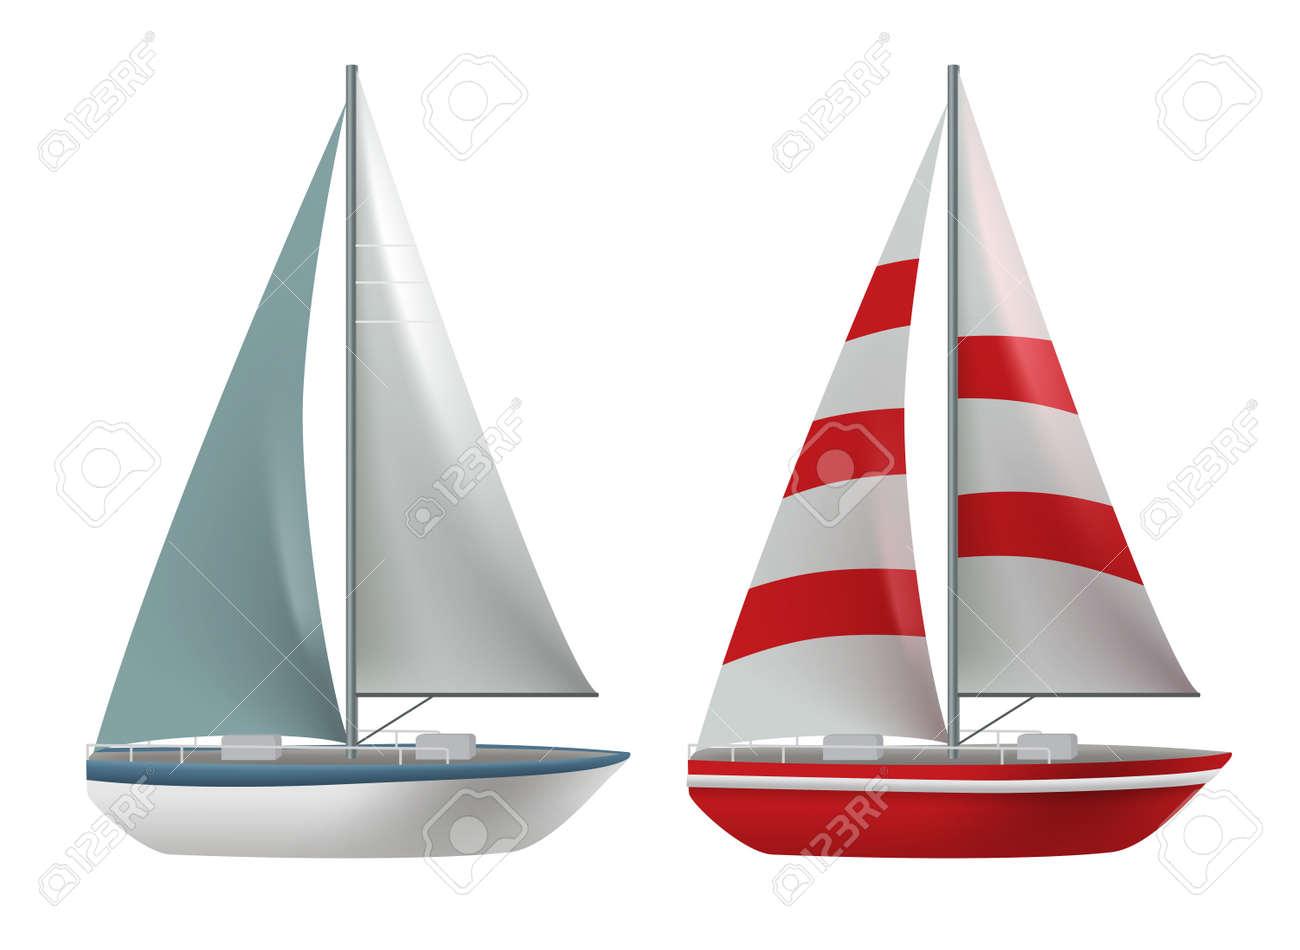 Travel boat vector set design. Travel ship and yacht collection elements isolated in white background for international cruise transportation. Vector illustration. - 170293594